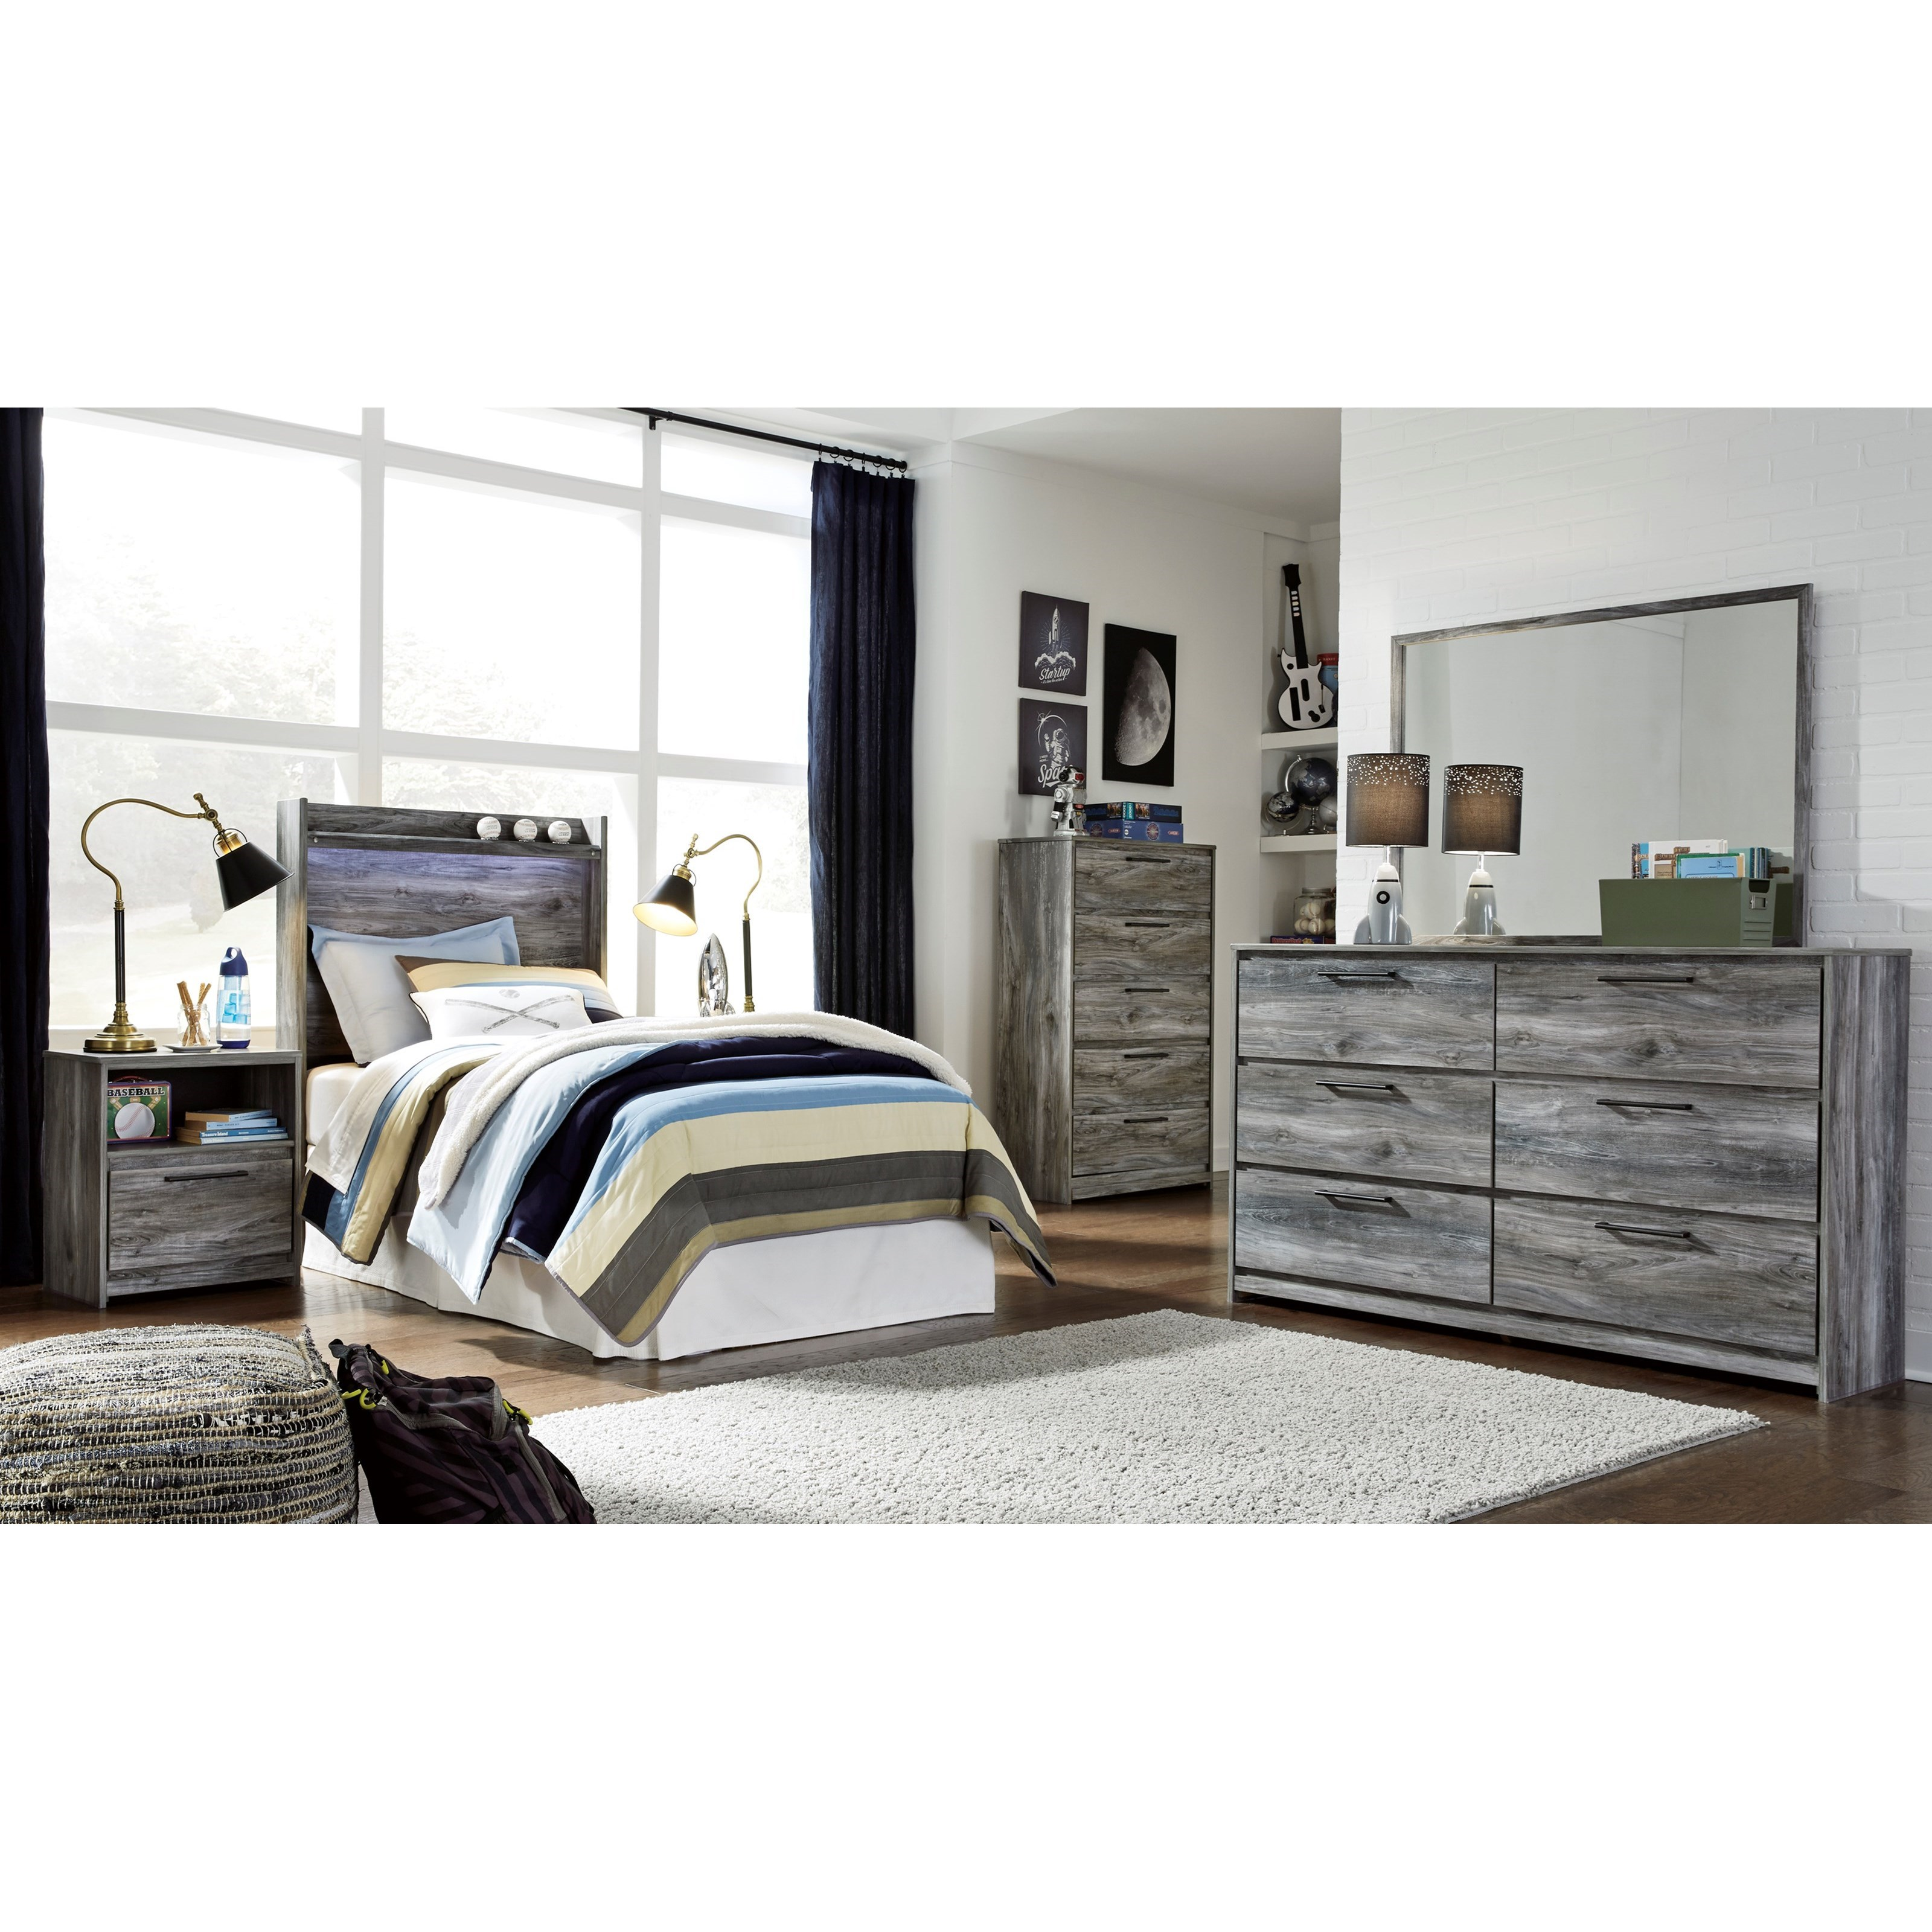 Baystorm Twin Bedroom Group by Ashley (Signature Design) at Johnny Janosik